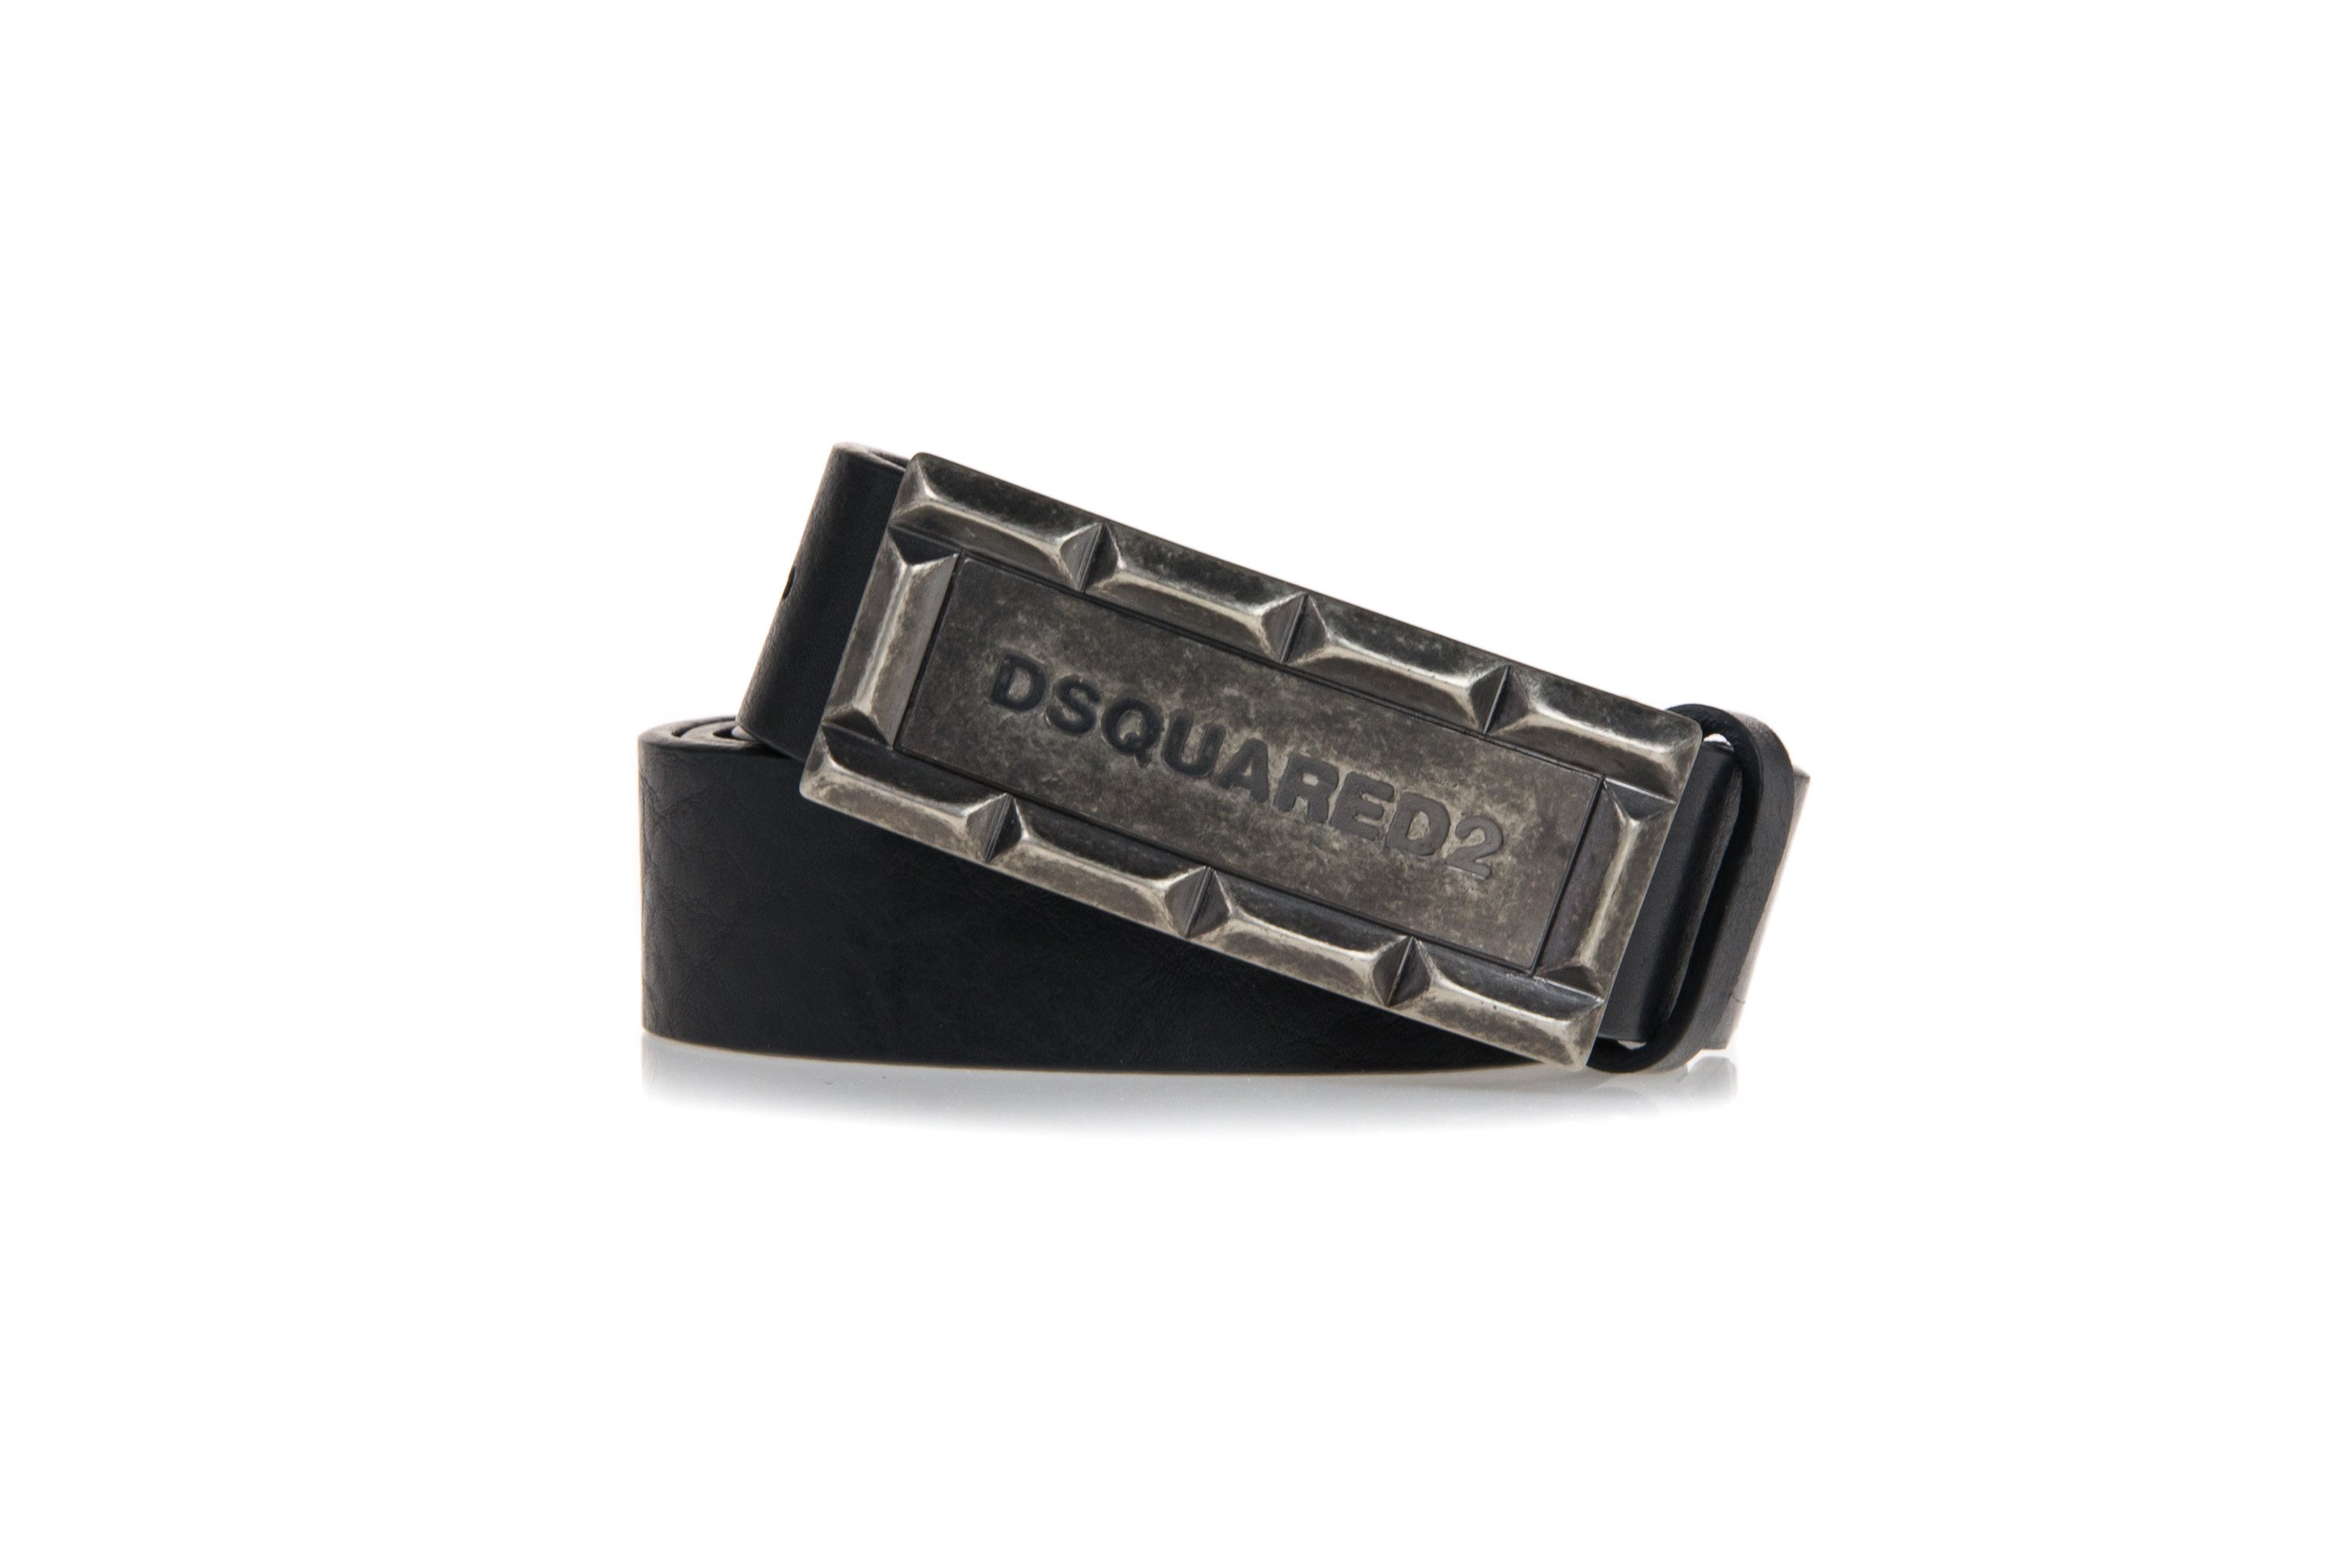 DSQUARED2 Mens Black Leather Thin Belt BE1030 291 M1074 Logo Buckle ... e7f2d959daaa